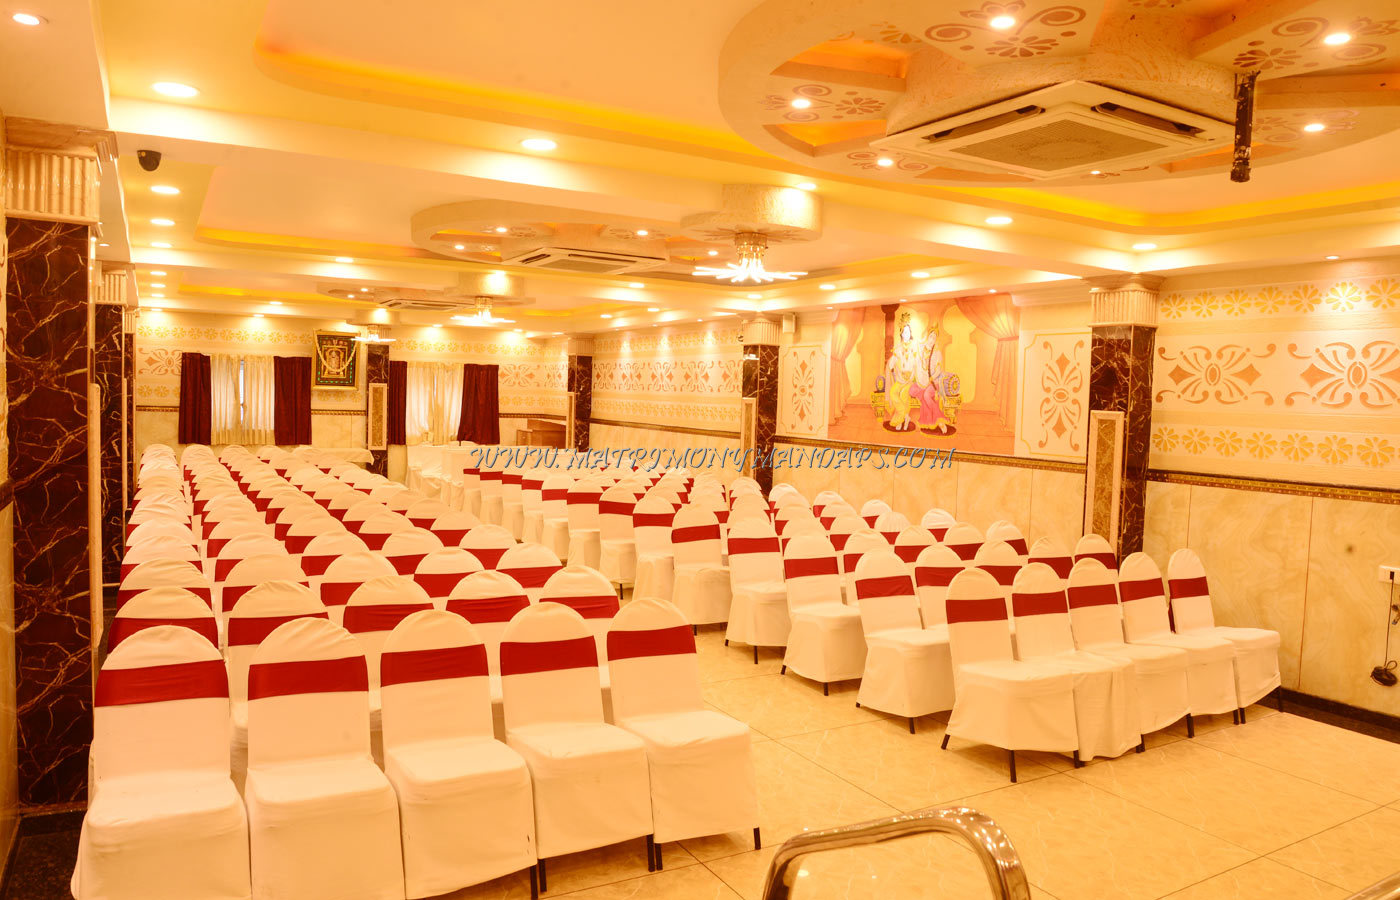 Find the availability of the Nisarga Party Hall At Basaveshwaranagar (A/C) in Basaveshwara Nagar, Bangalore and avail special offers